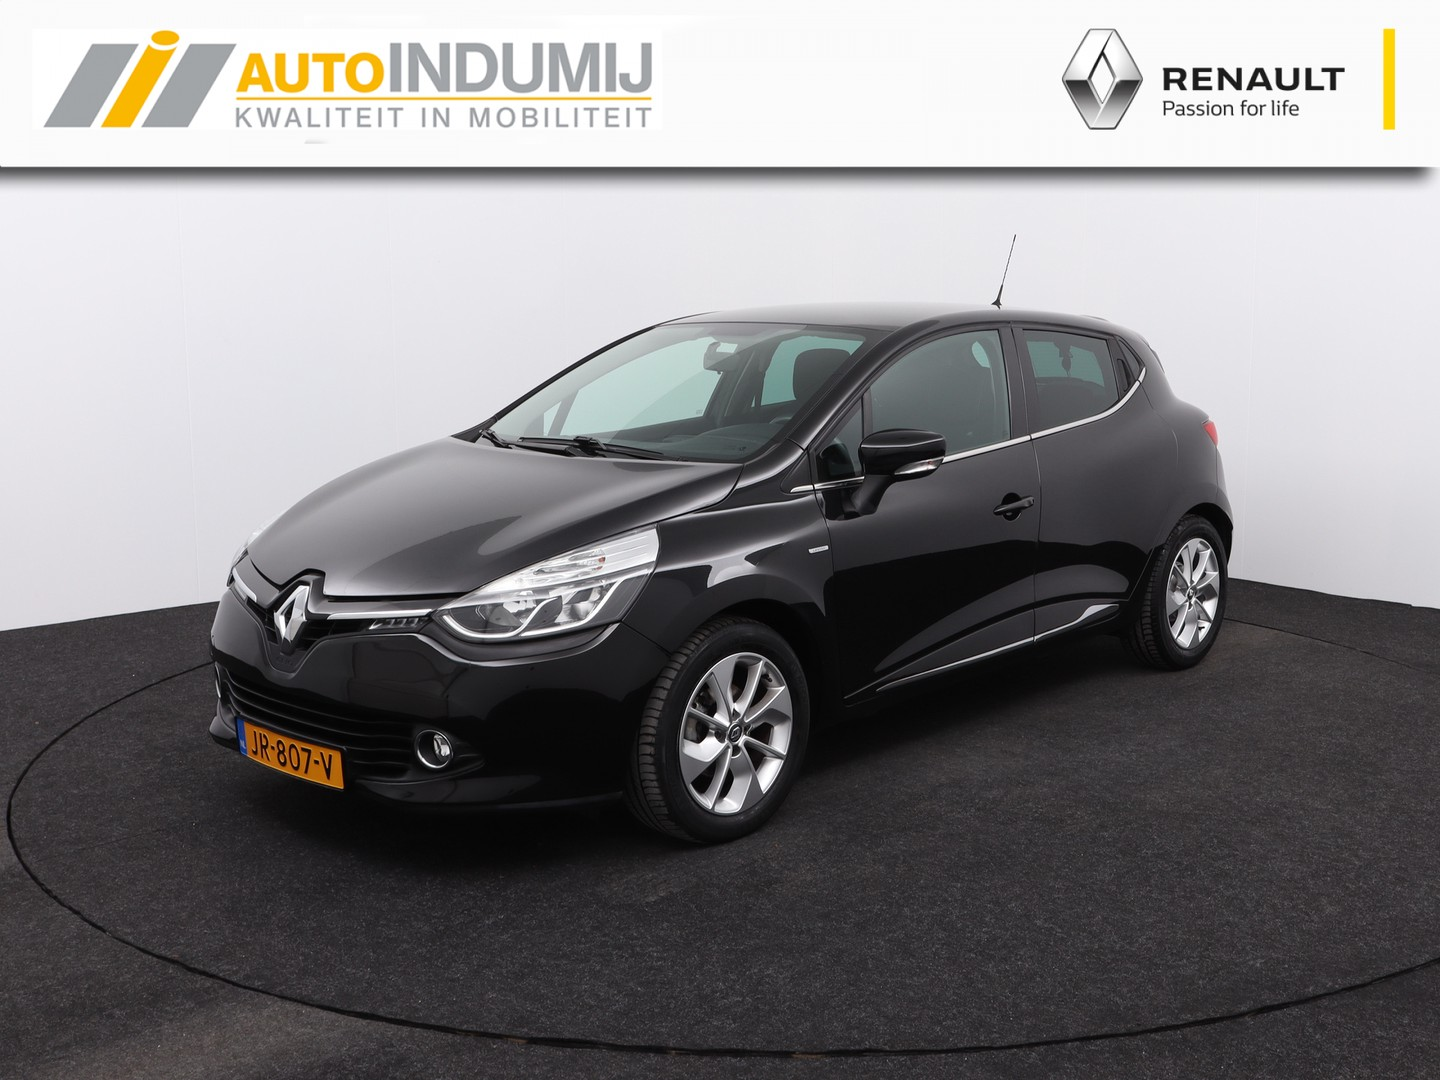 Renault Clio Tce 90 limited / airco / parkeersensoren / usb & bluetooth